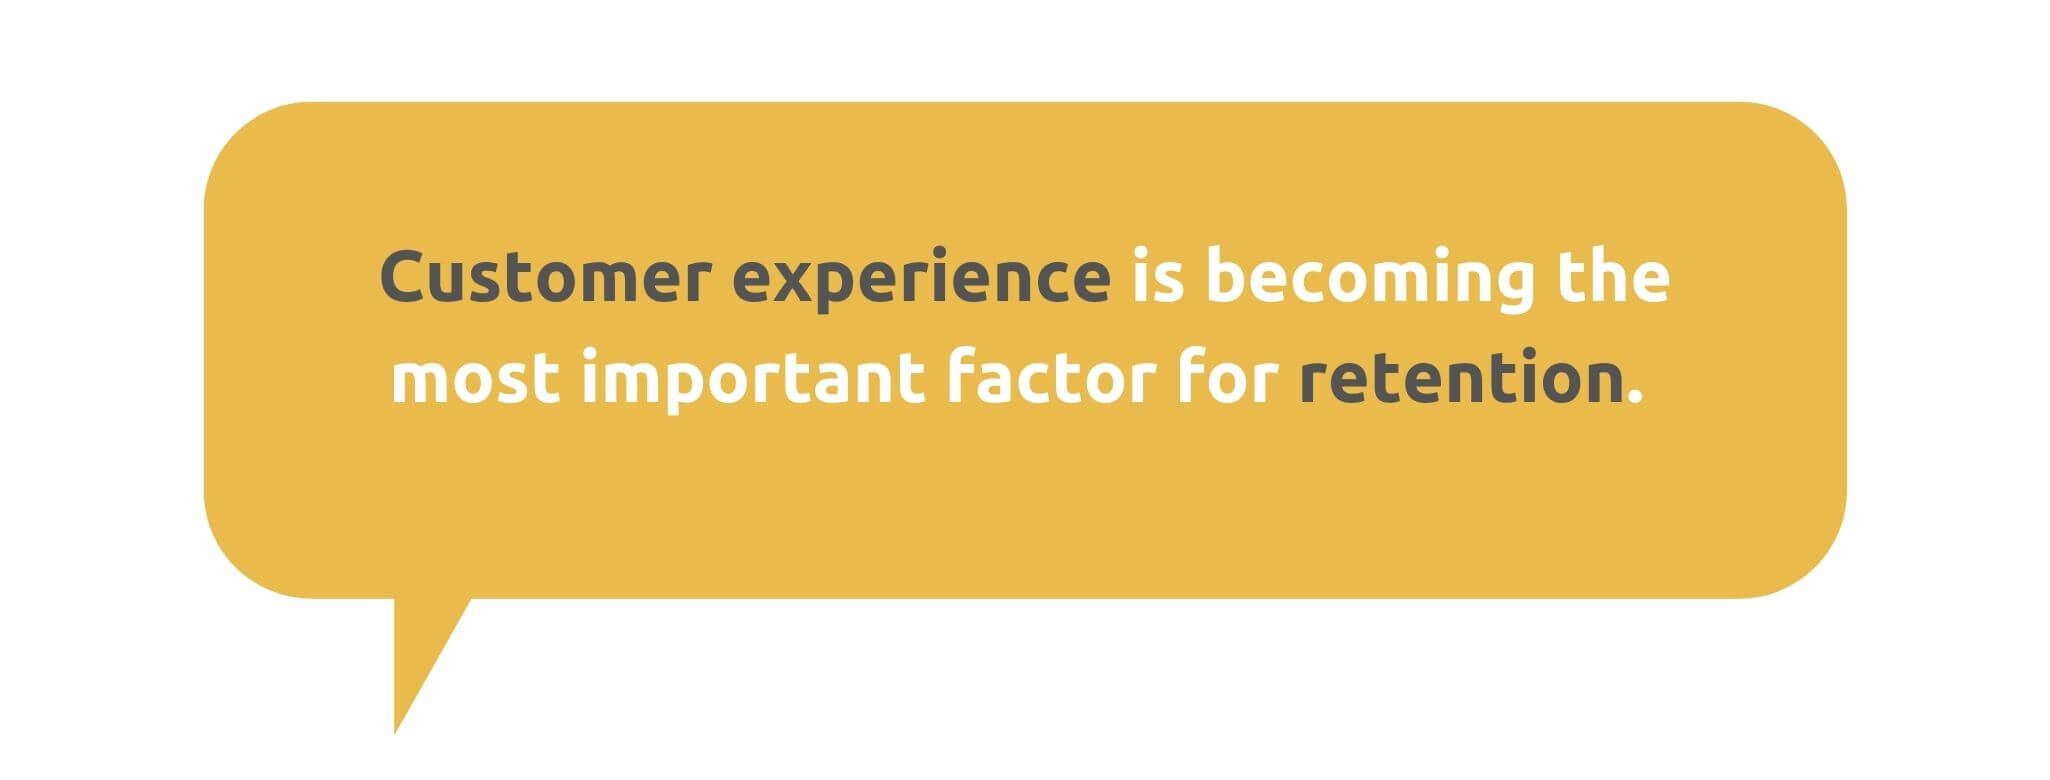 Customer Experience Is Crucial to Retention - 50+ CRM Stats - Replyco Helpdesk Software for eCommerce